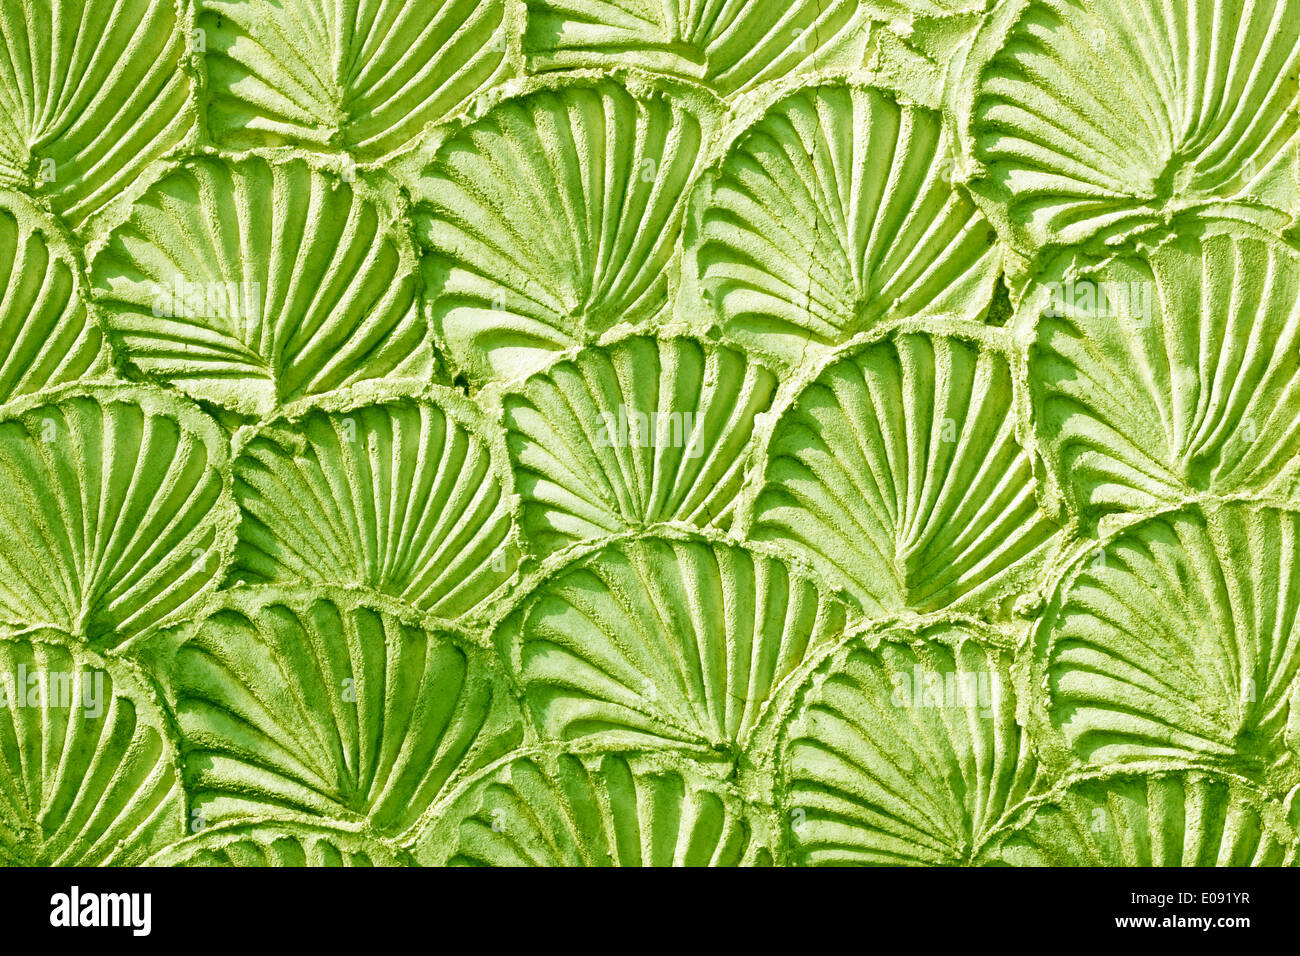 green mortar wall texture background aesthetic. - Stock Image